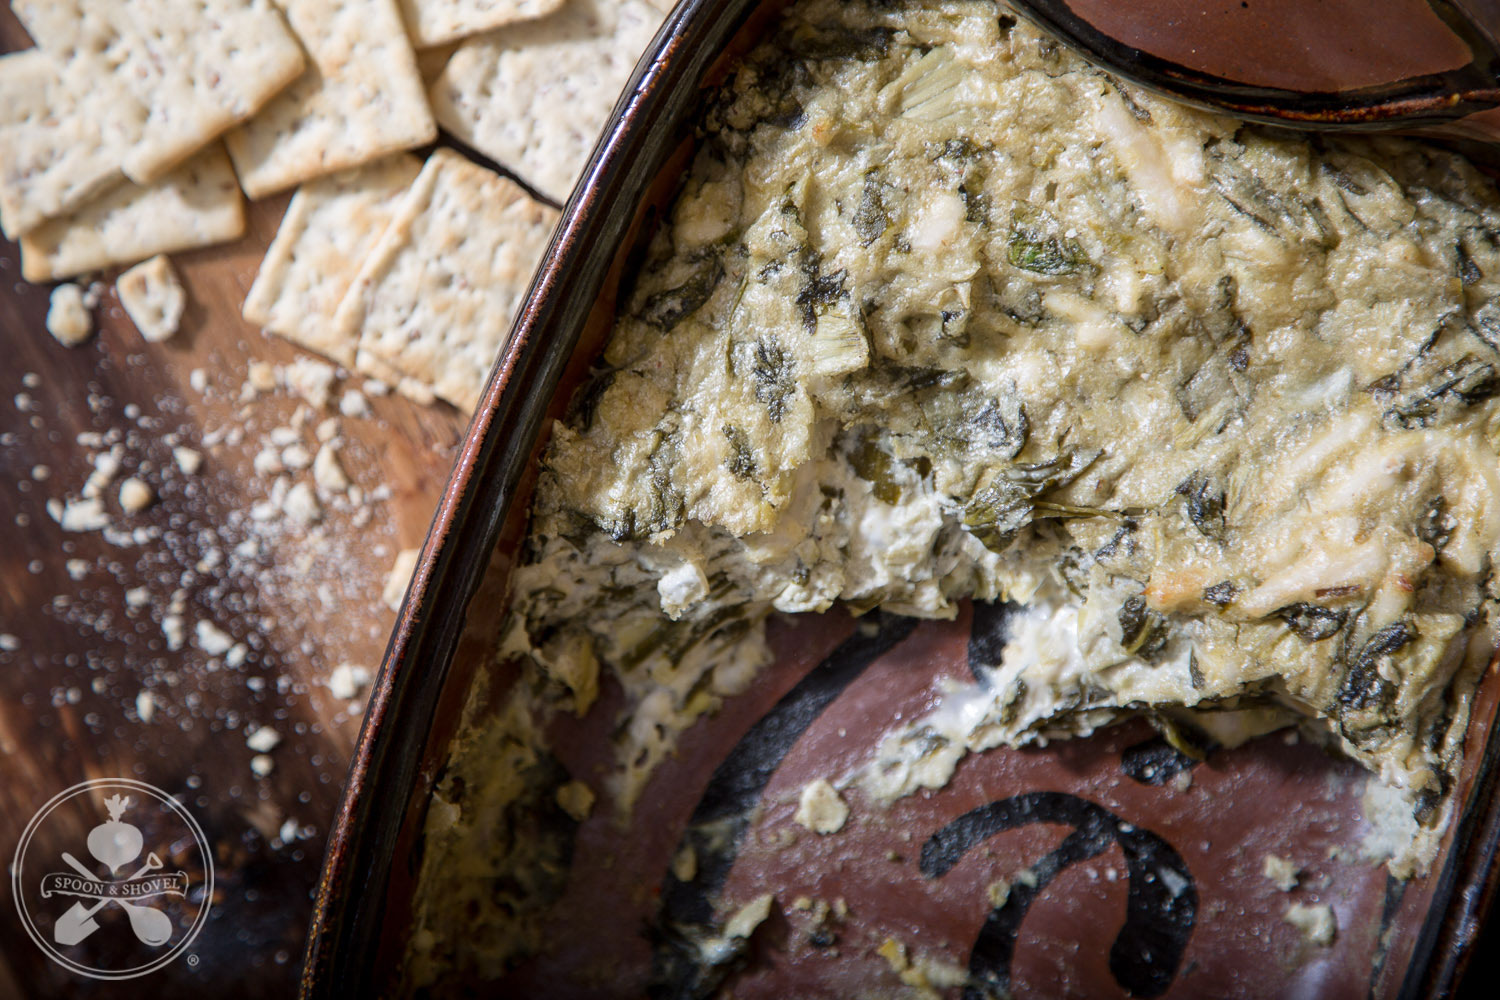 Vegan, soy-free spinach artichoke dip from The Spoon + Shovel